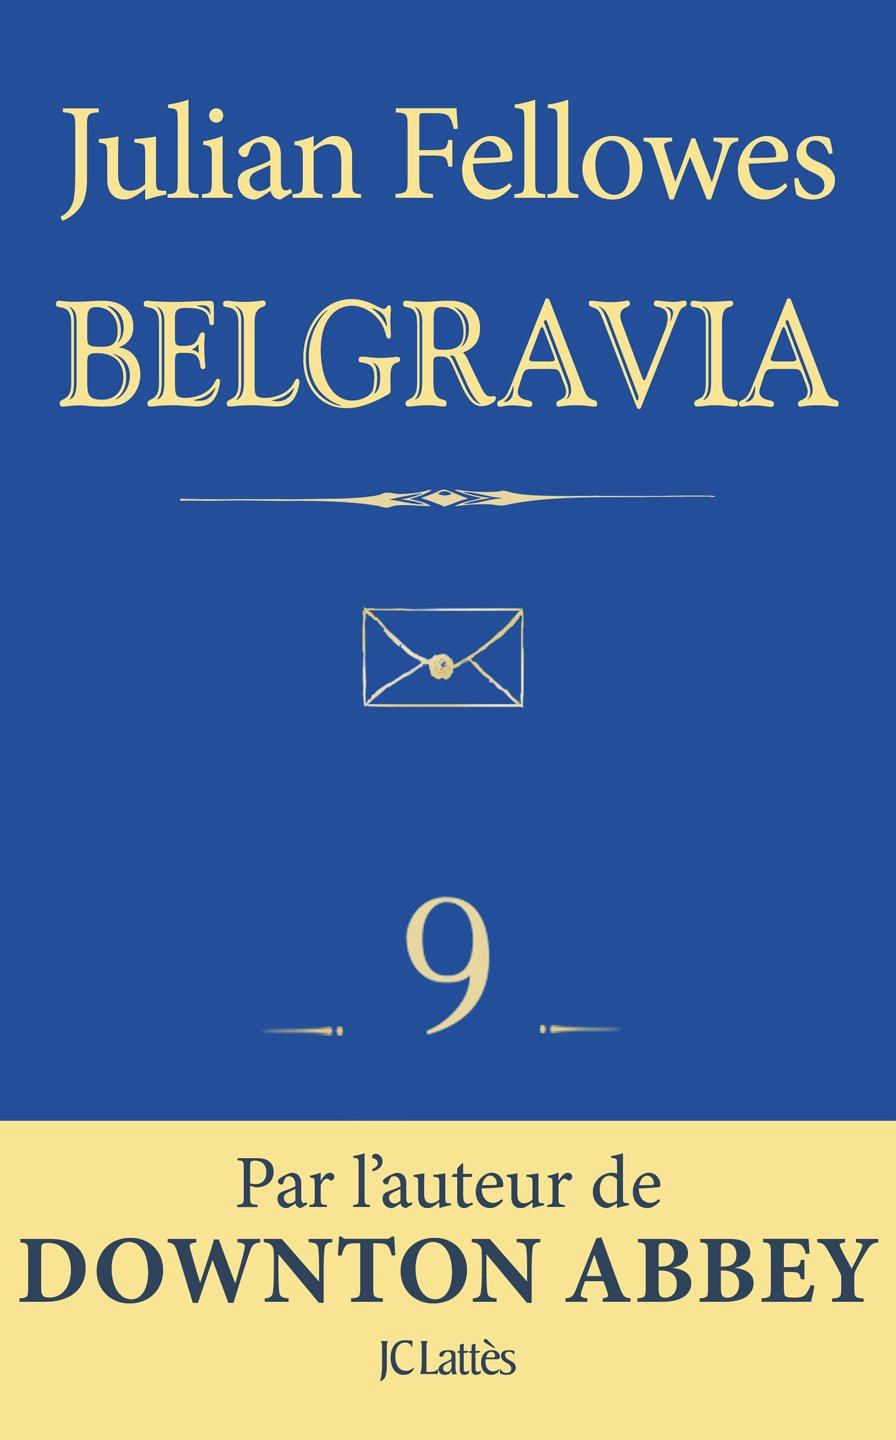 Couverture : Julian Fellowes Belgravia